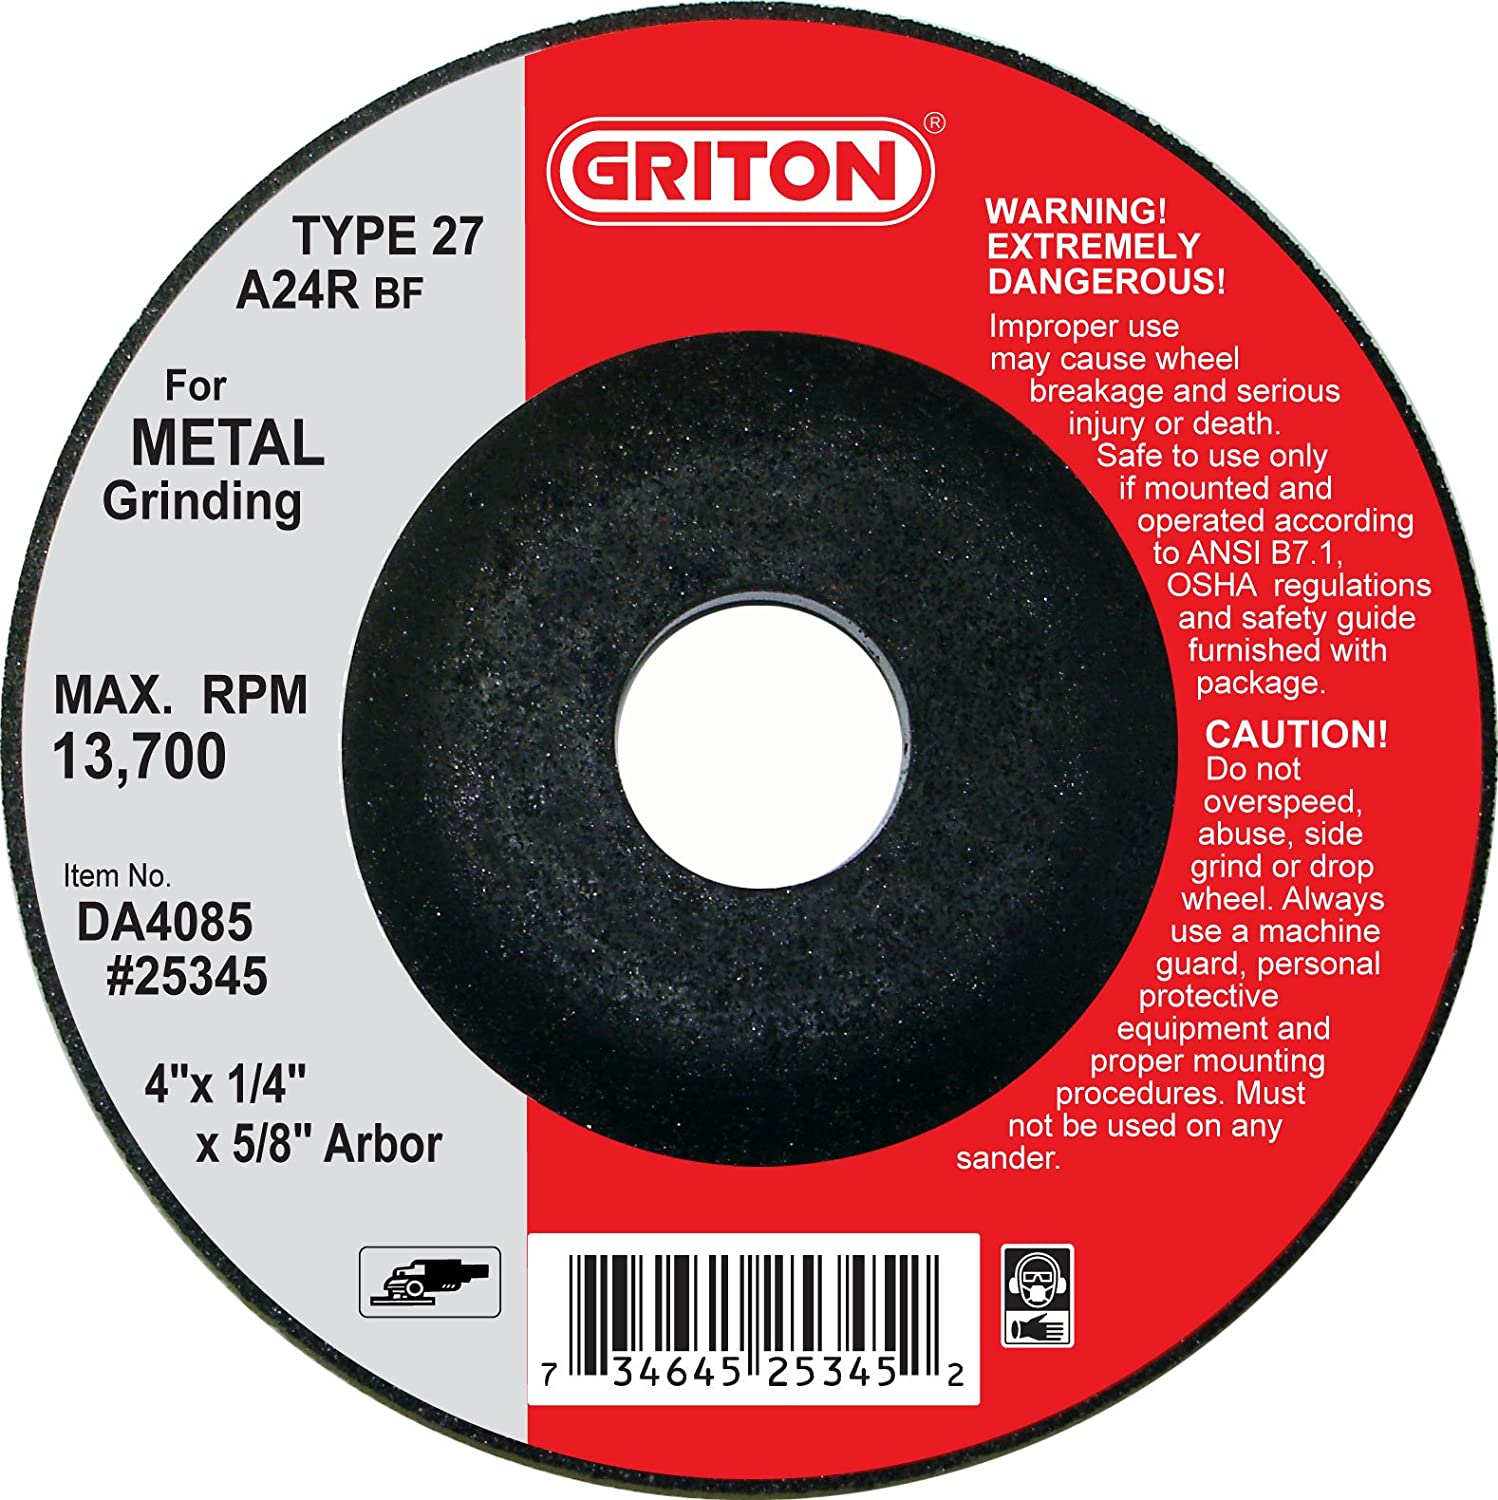 4 Diameter Silicon Carbide 13700 RPM Pack of 25 Griton DC4085 Type 27 Grinding Wheel Used on Masonry